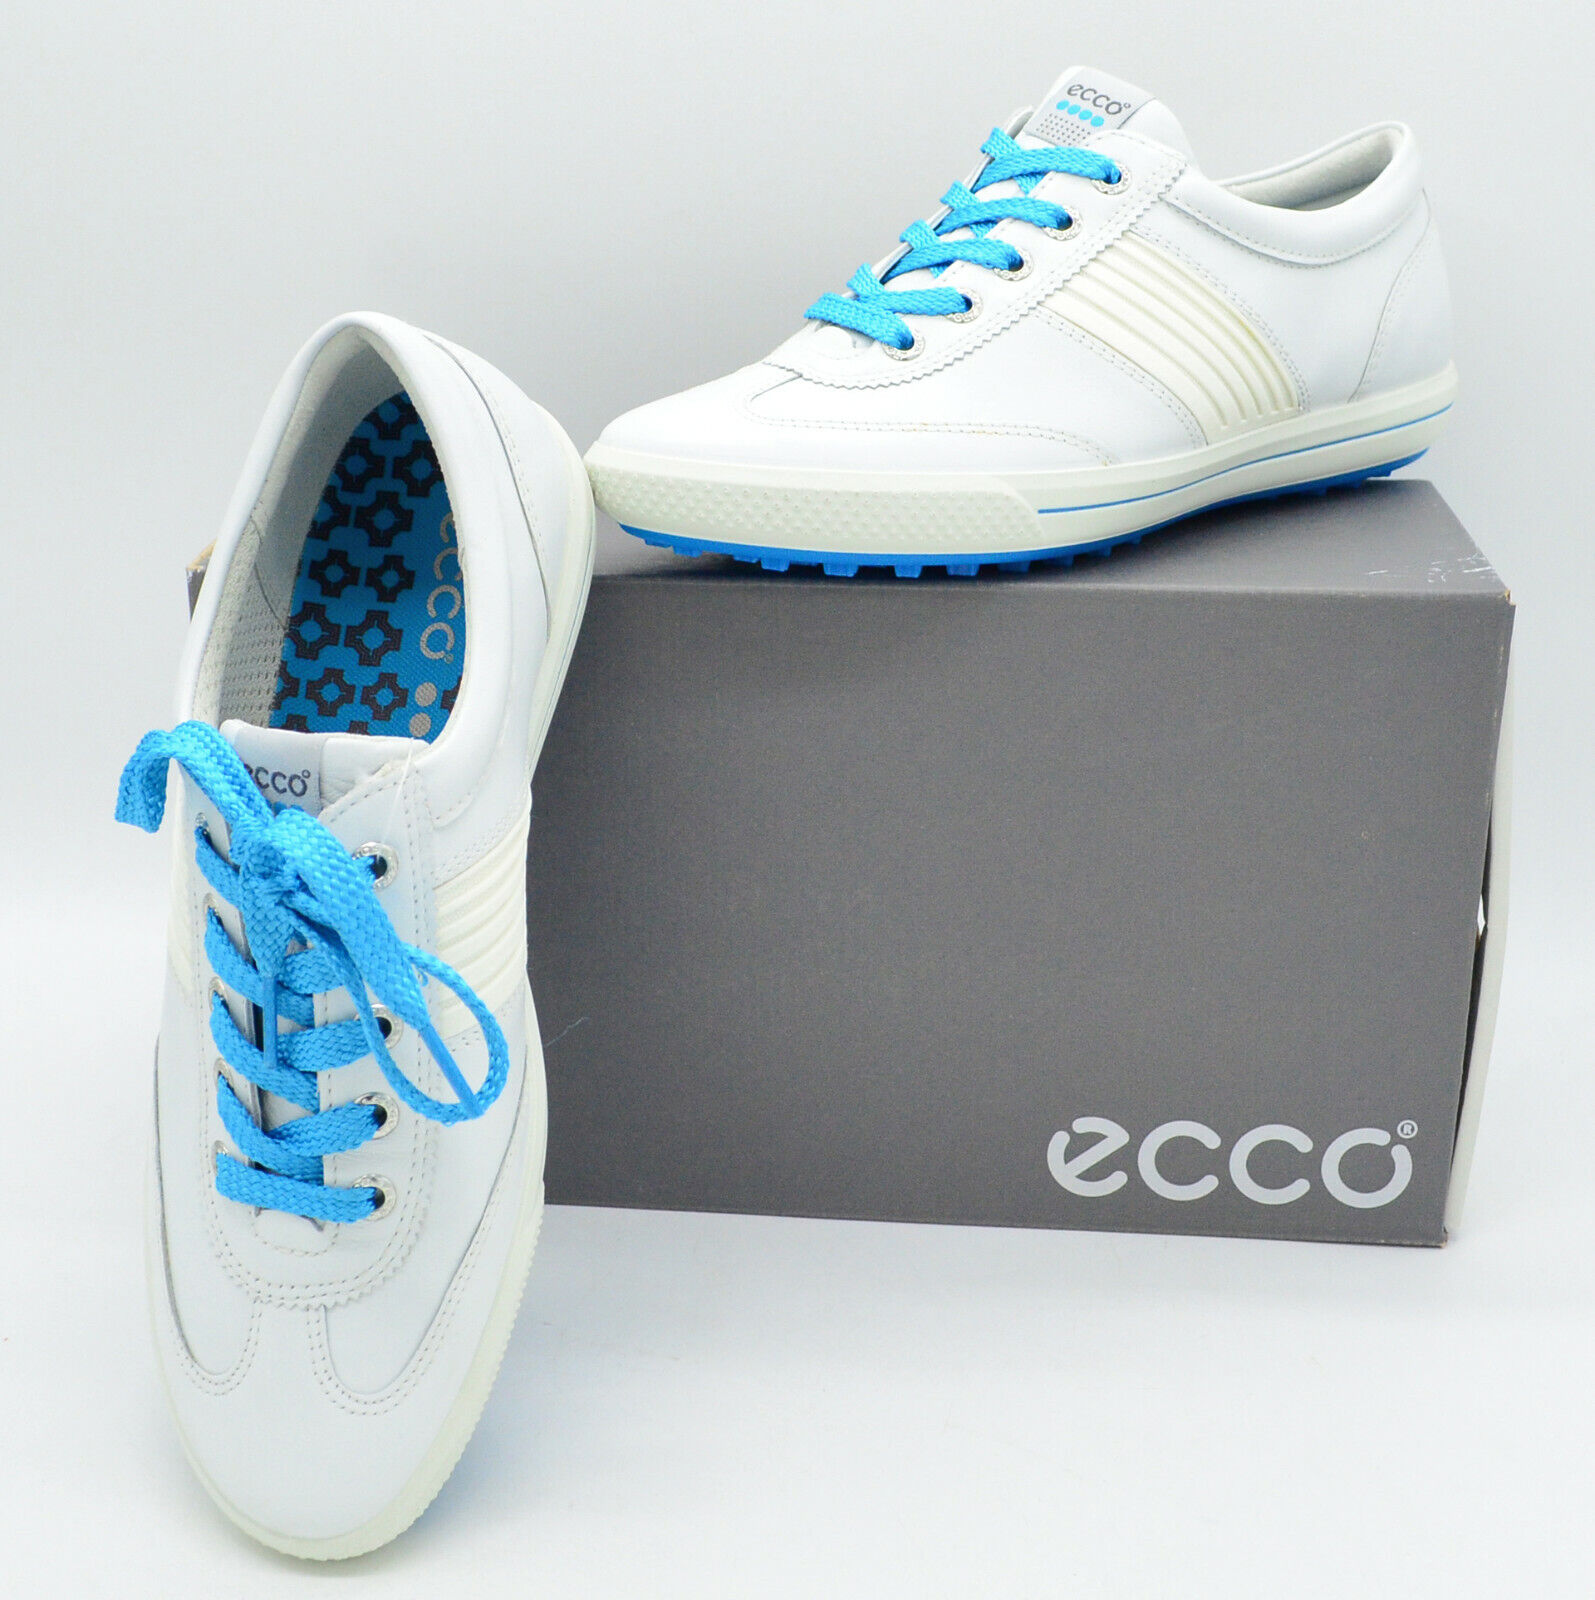 Ecco Womens Golf Street Lace Gr. 38 Damen Golf Schuhe Sport Mode Luxus, sneaker